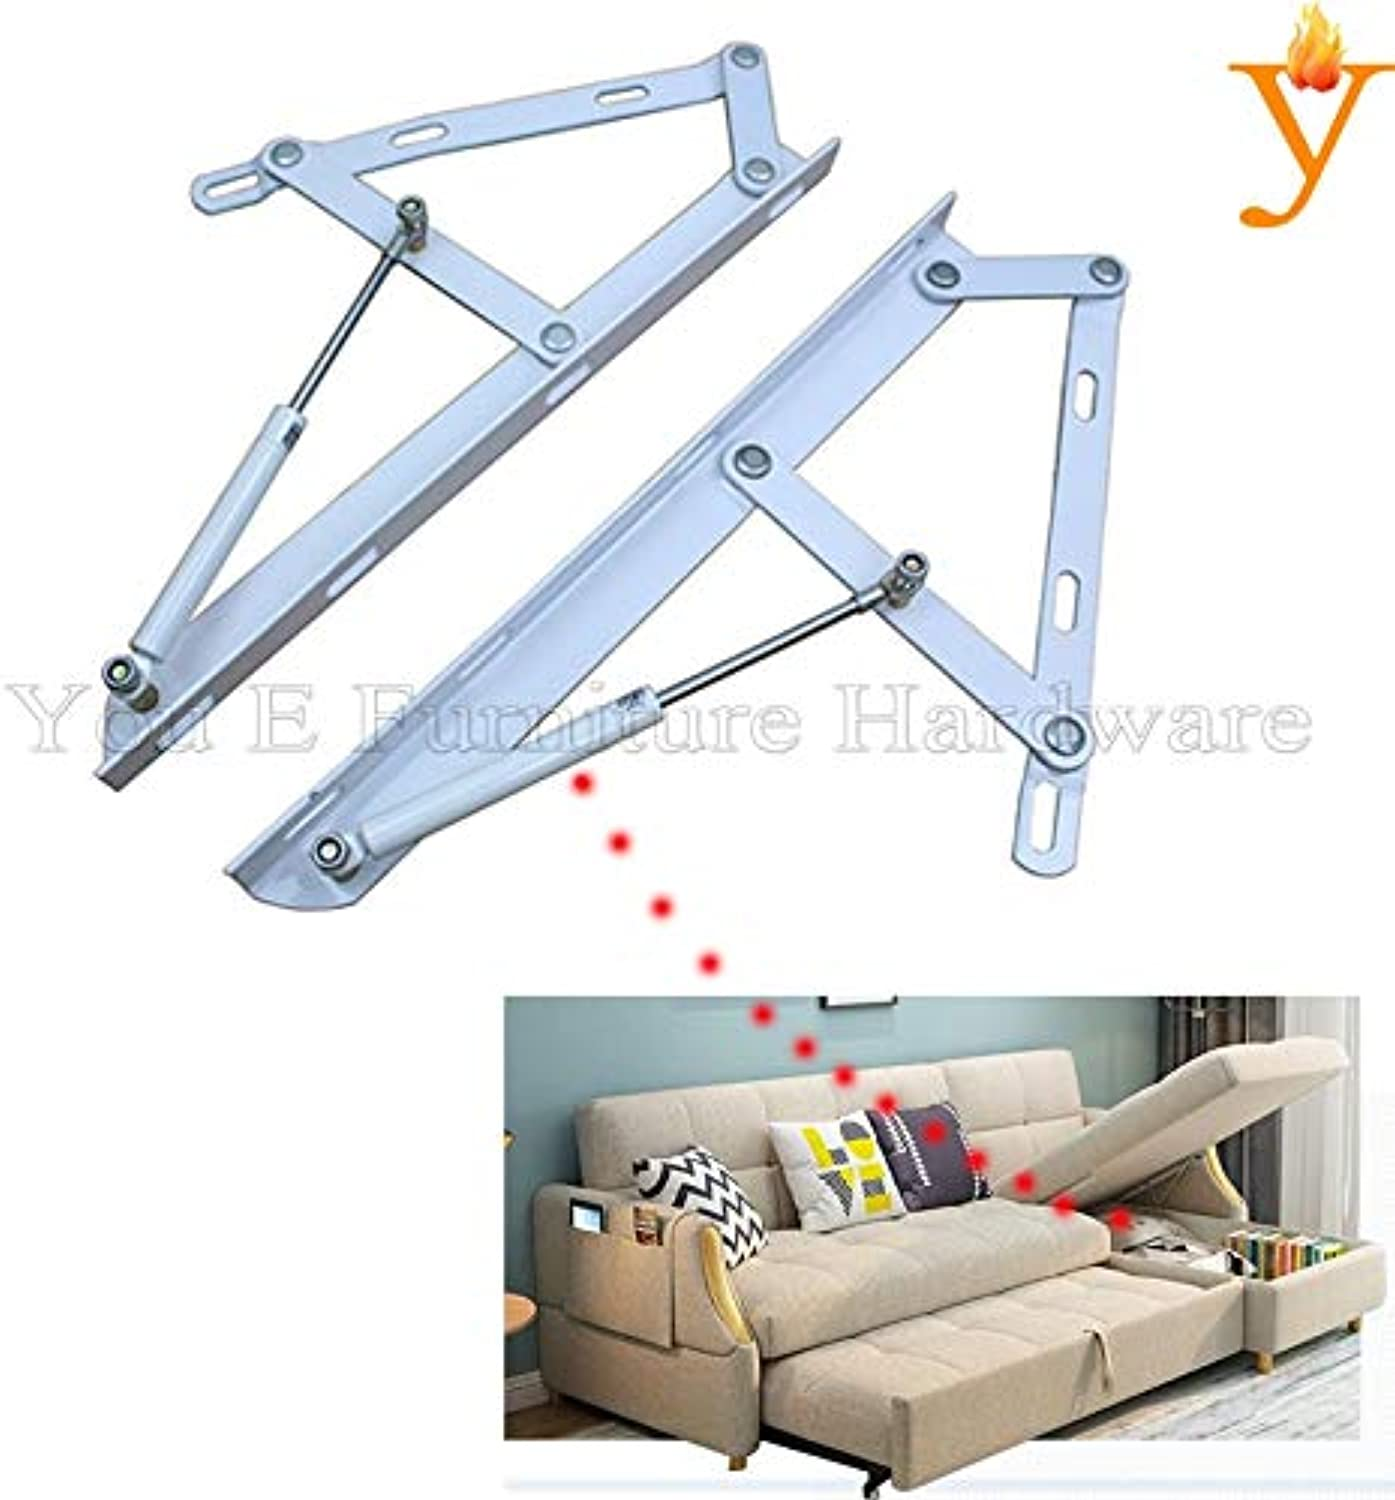 Manufactory Sale Lift Up Sofa Storage Box Or Sofa Seat Gas Lift Mechanism for Sofa Bed A09-1